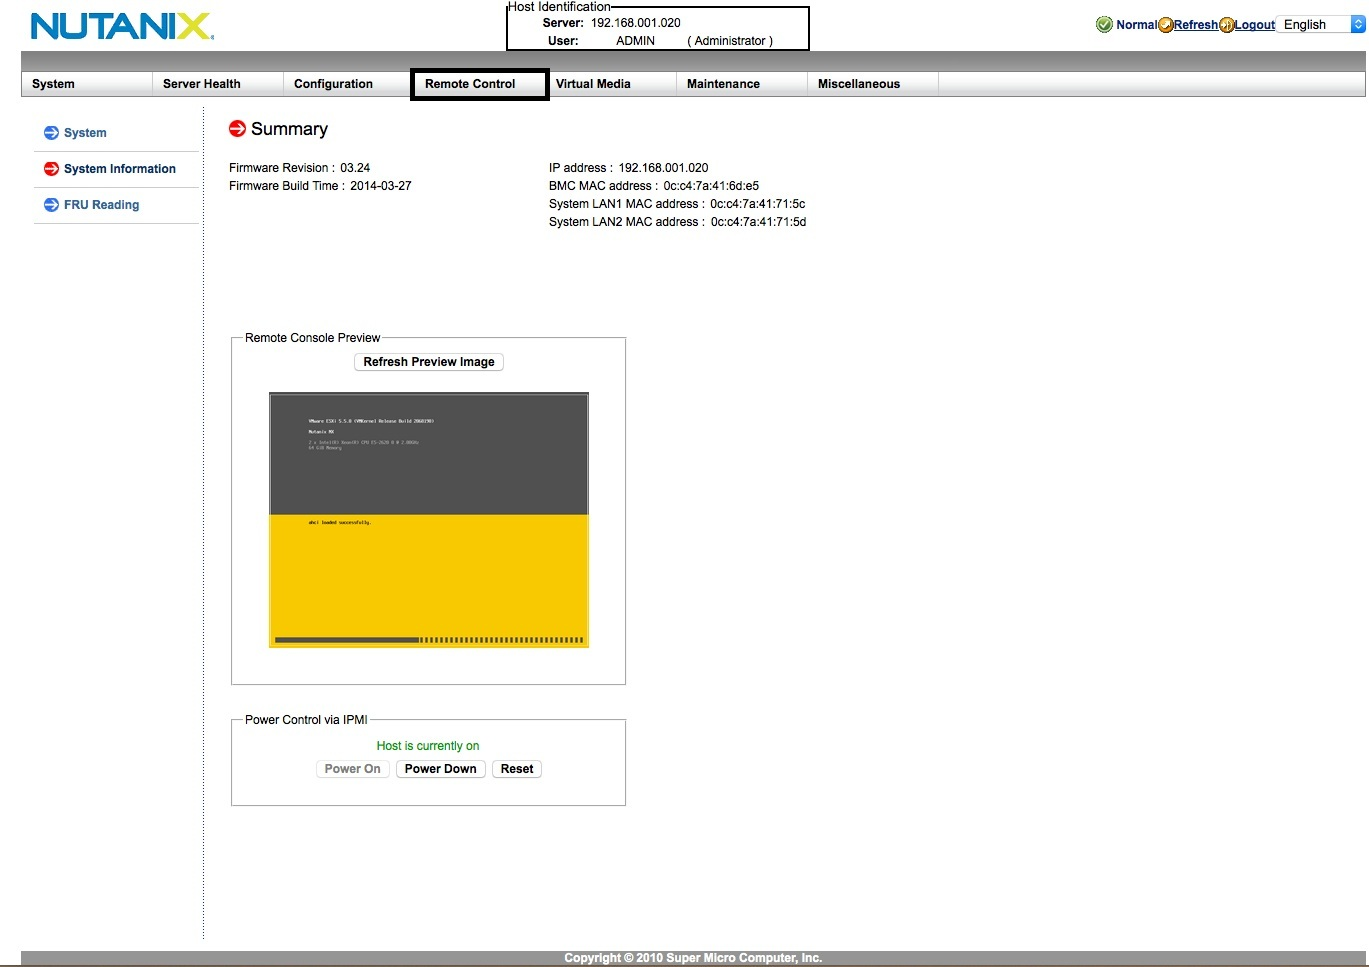 vmware esxi 5.5 installation guide step by step